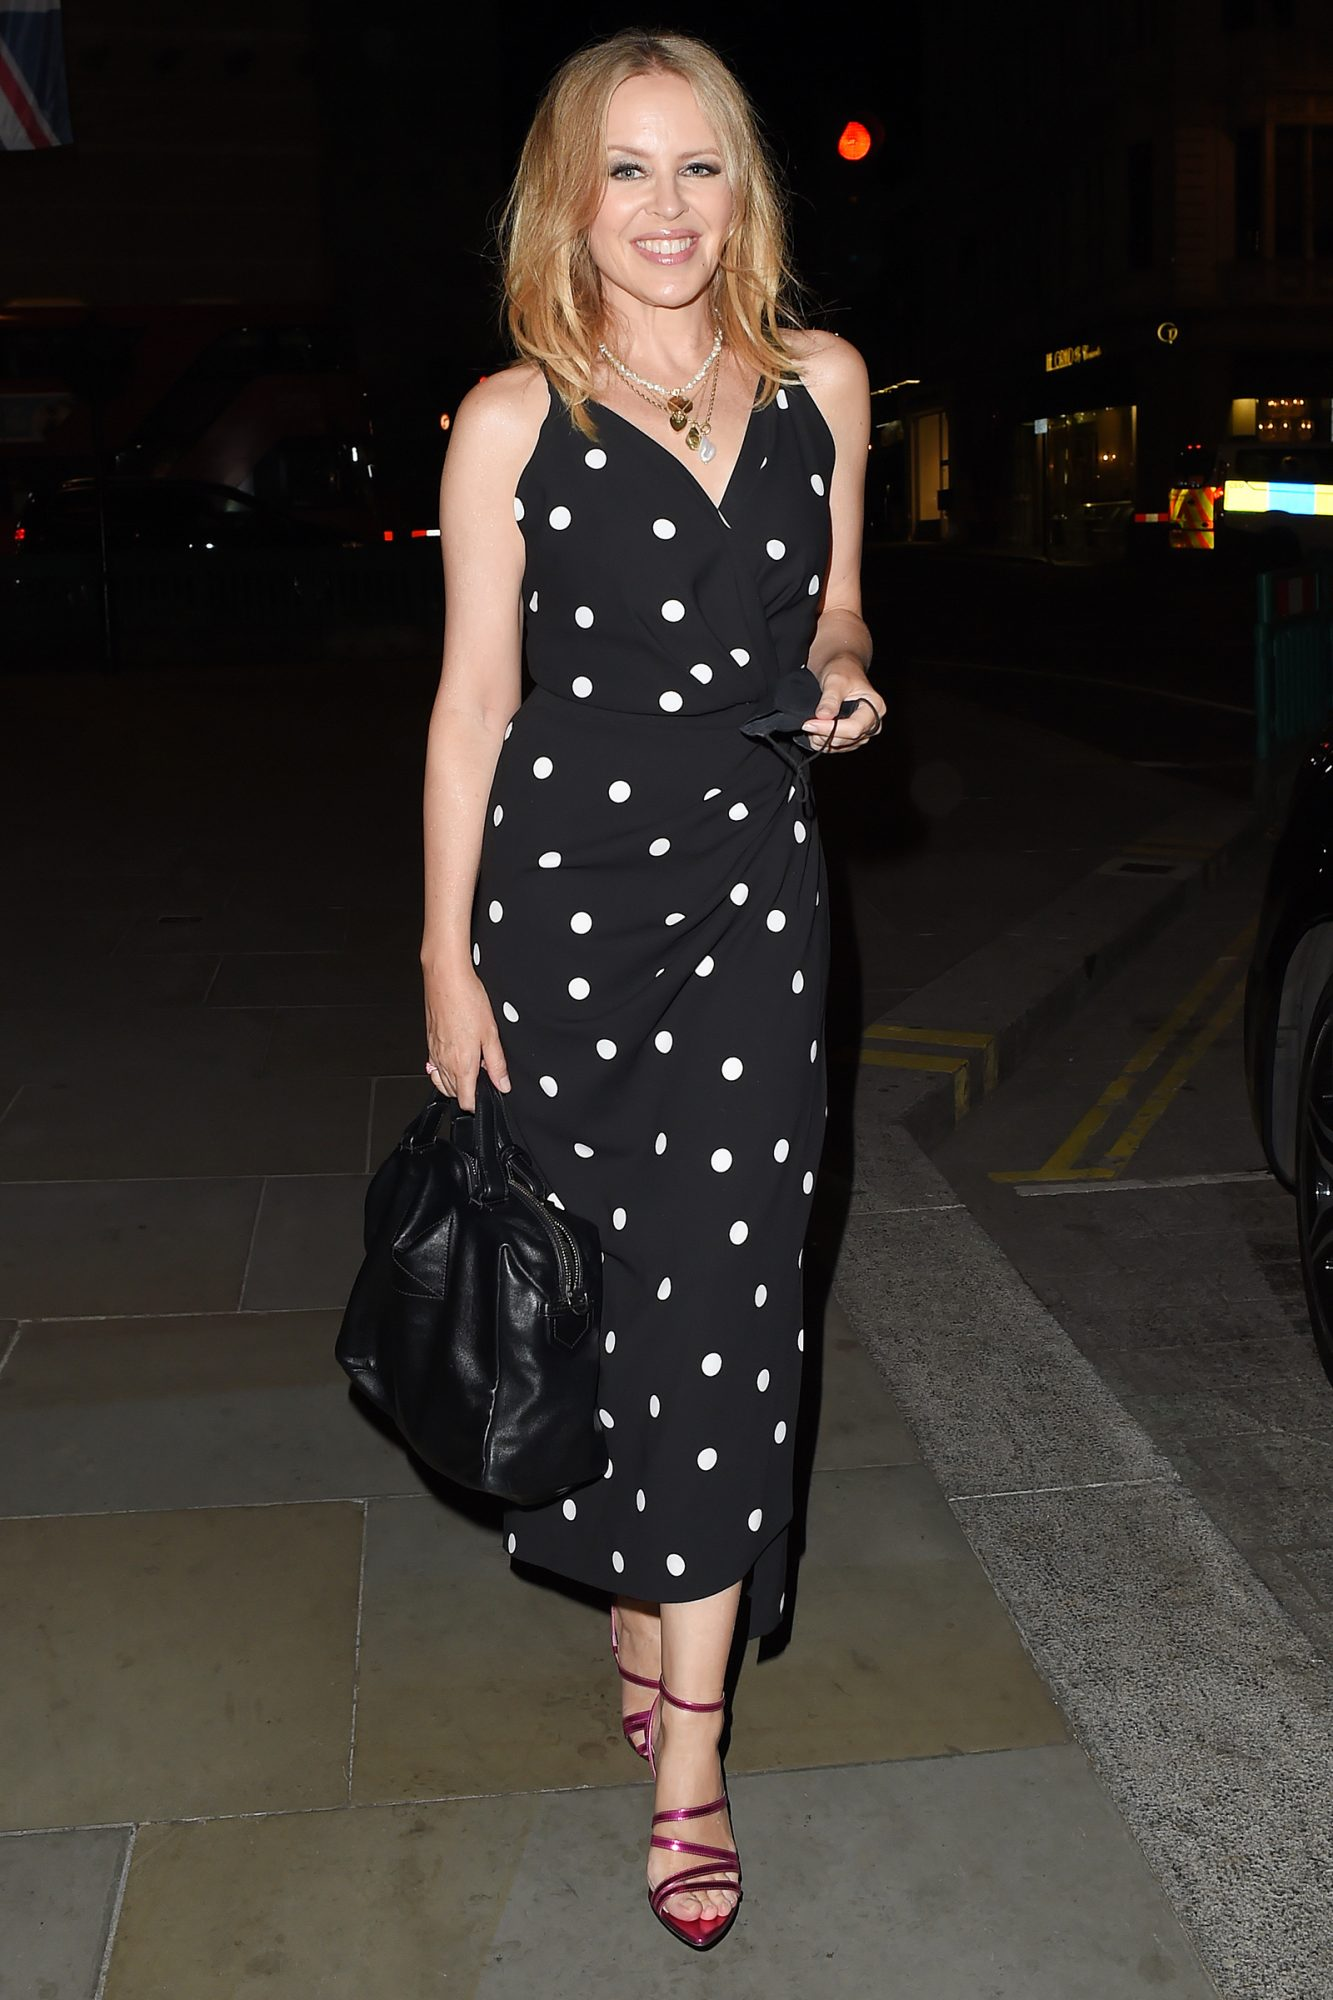 Kylie Minogue Channels Her Inner Pretty Woman With A Polka Dot Dress, As She Enjoys A Night Out At The Ritz Hotel In Mayfair With Friends